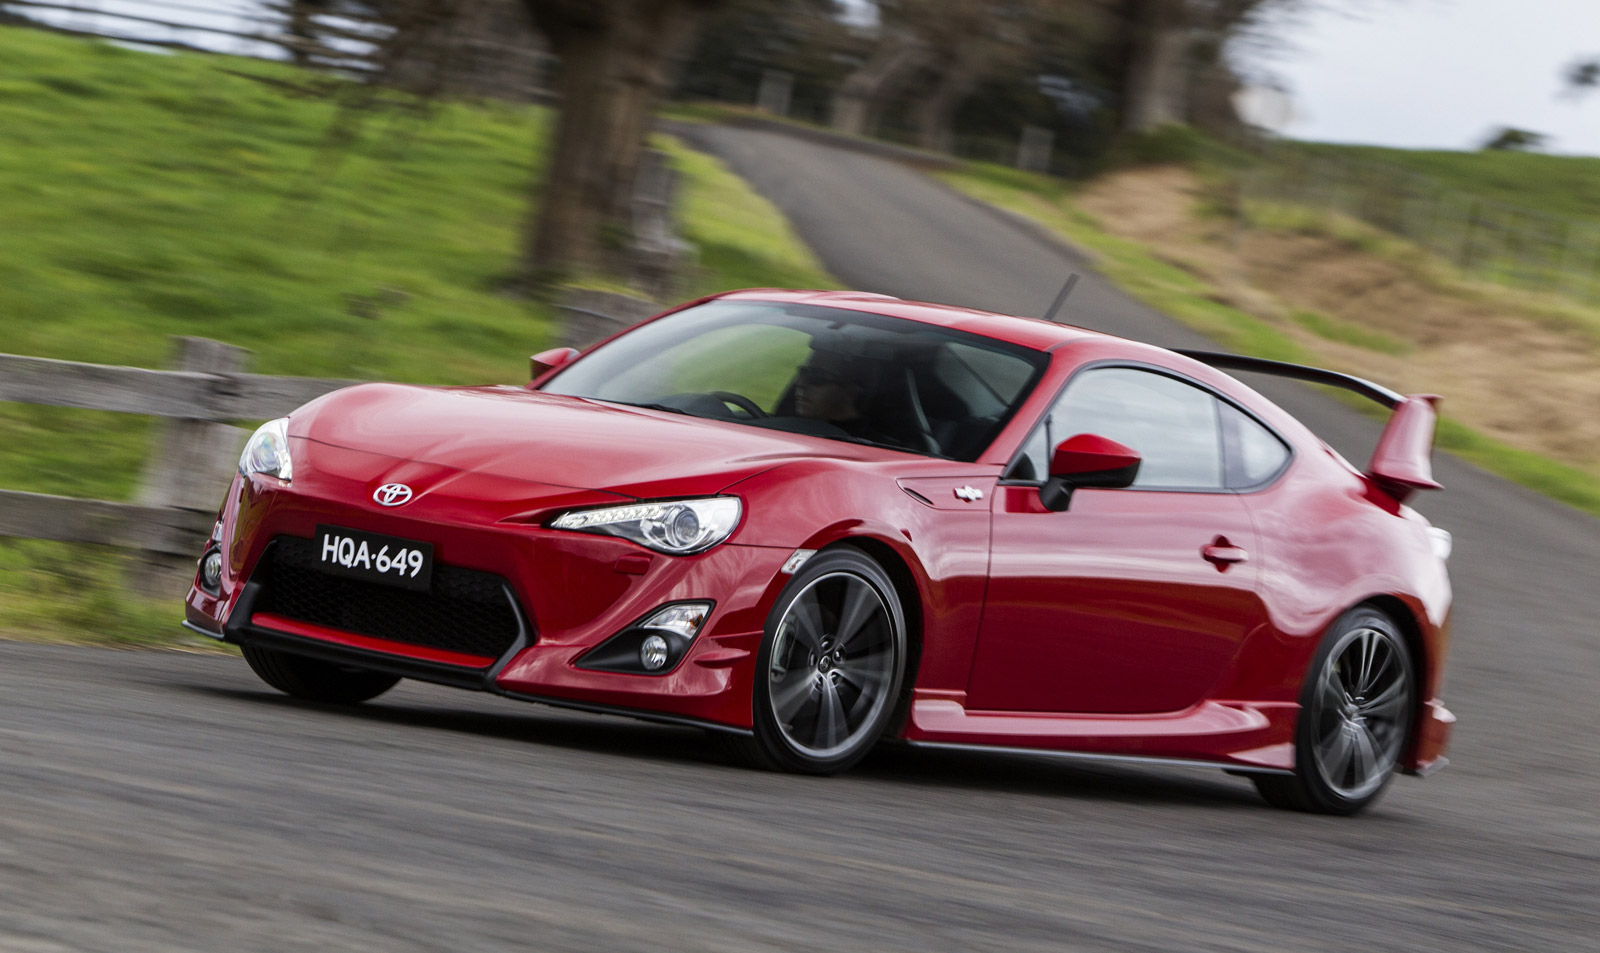 Toyota Gt 86 Aero Kit Hints At Upgrades For 2013 Scion Fr S